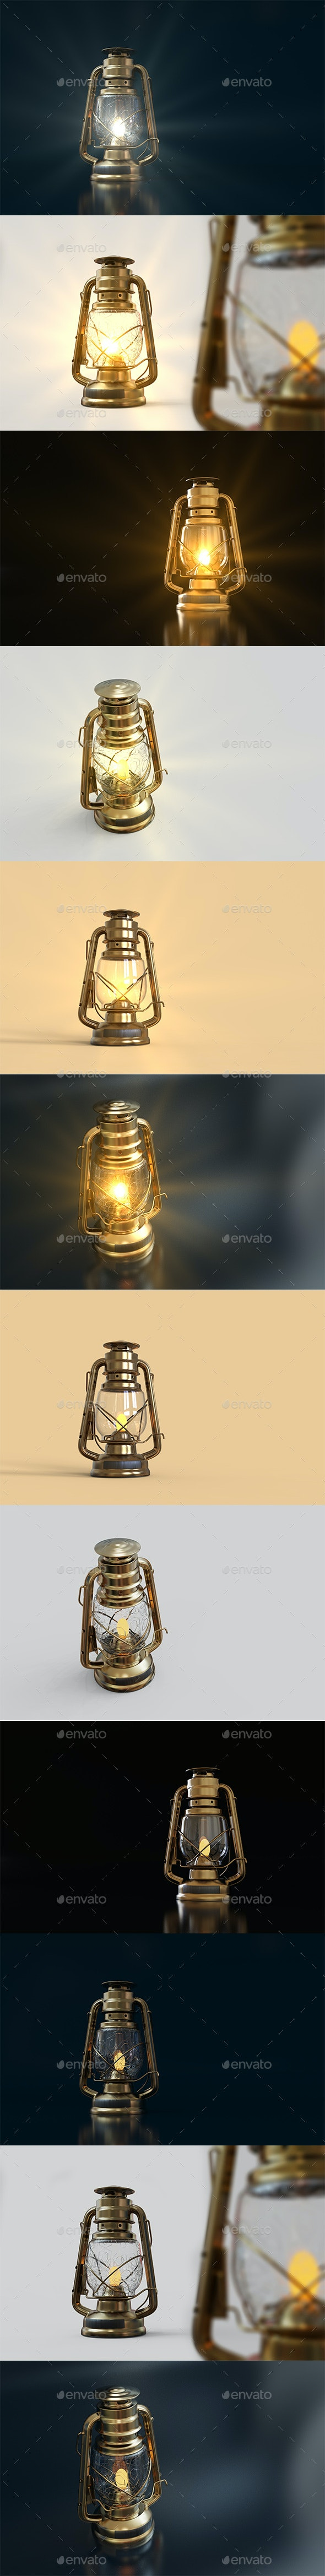 Old Style Lantern With Background - Miscellaneous 3D Renders